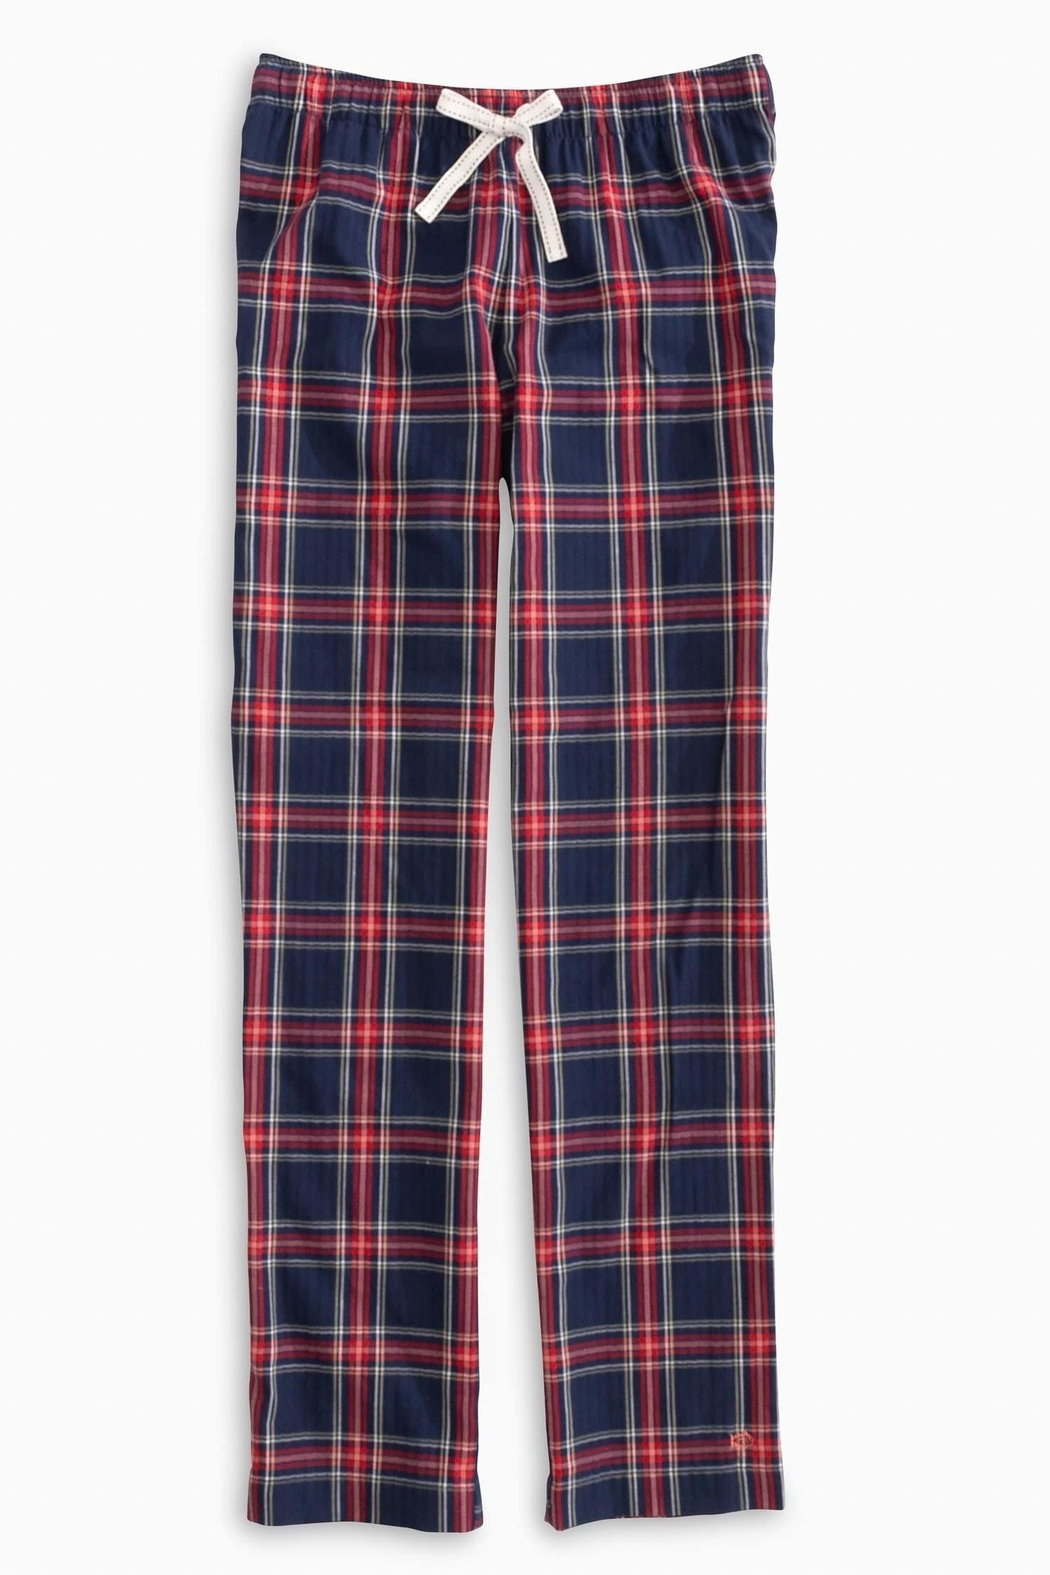 Southern Tide Plaid Lounge Pant - Front Cropped Image